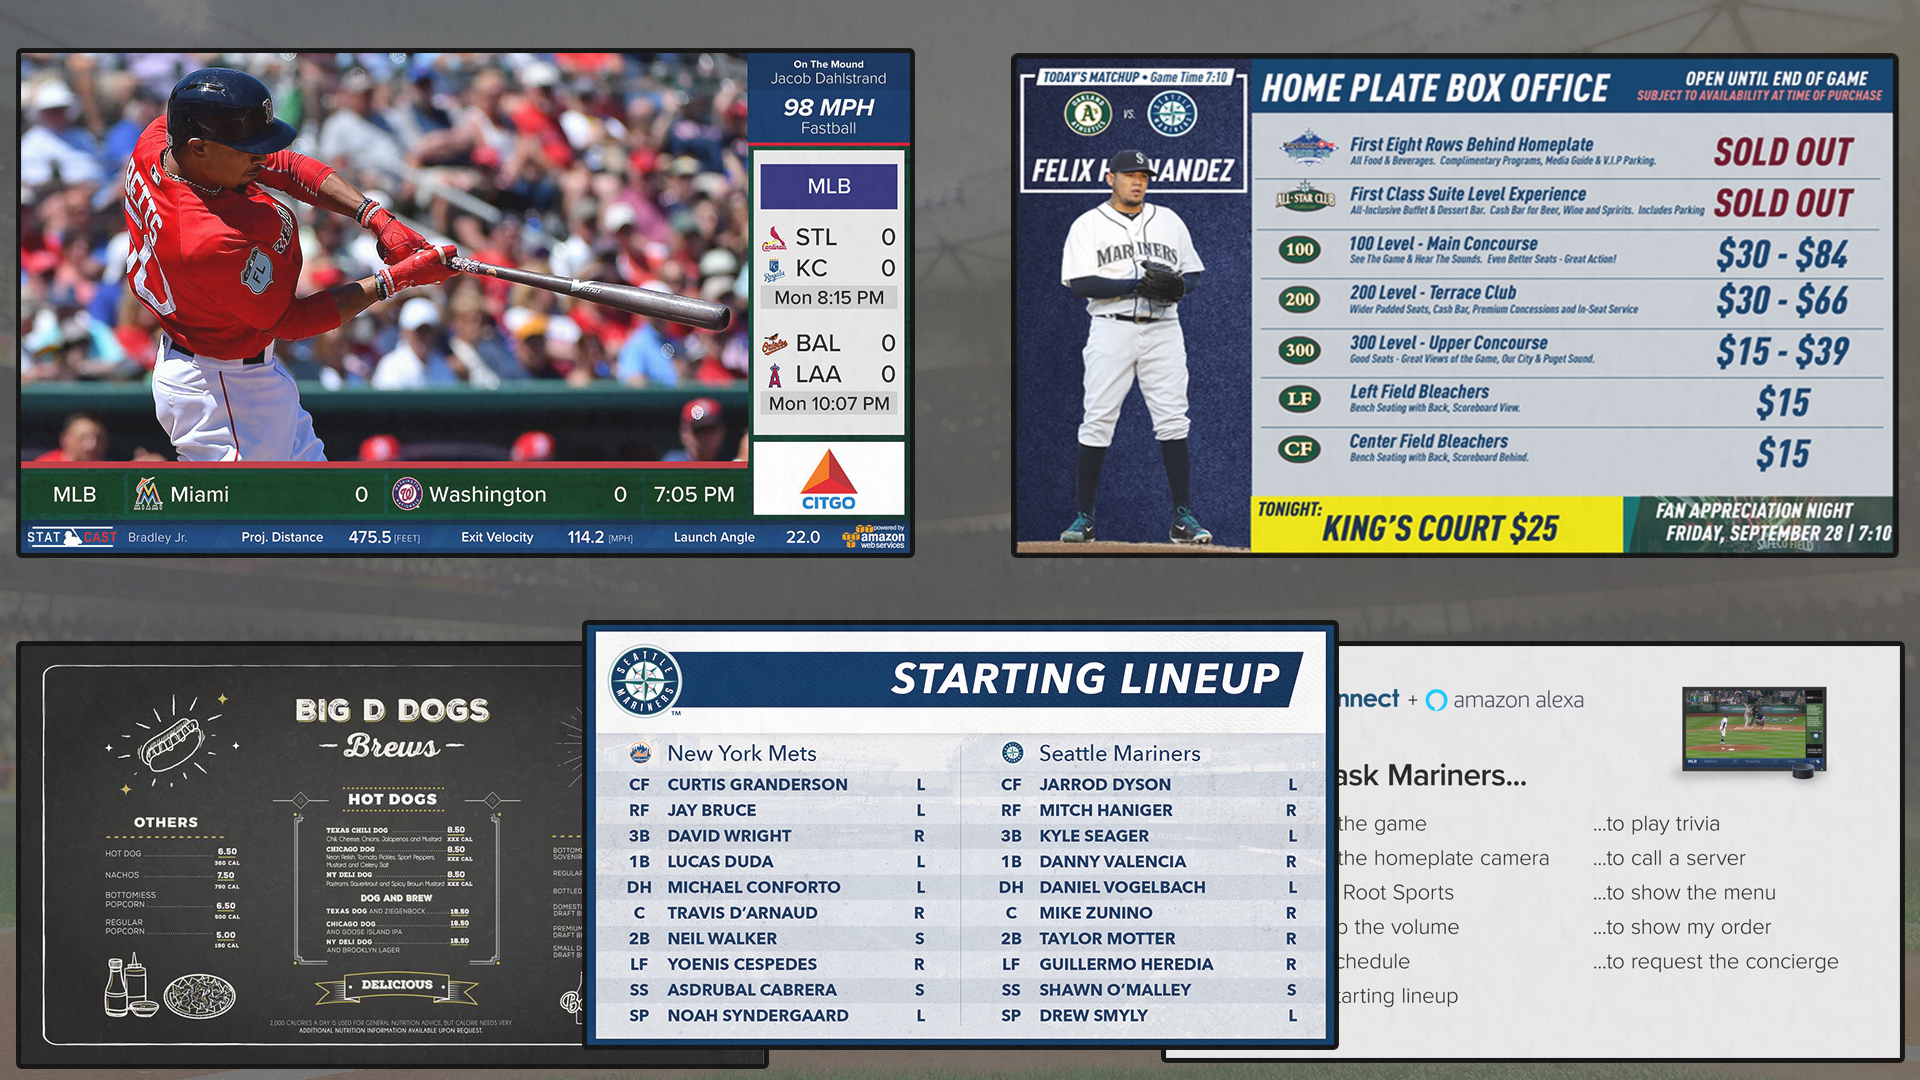 FanConnect powers screens around the MLB